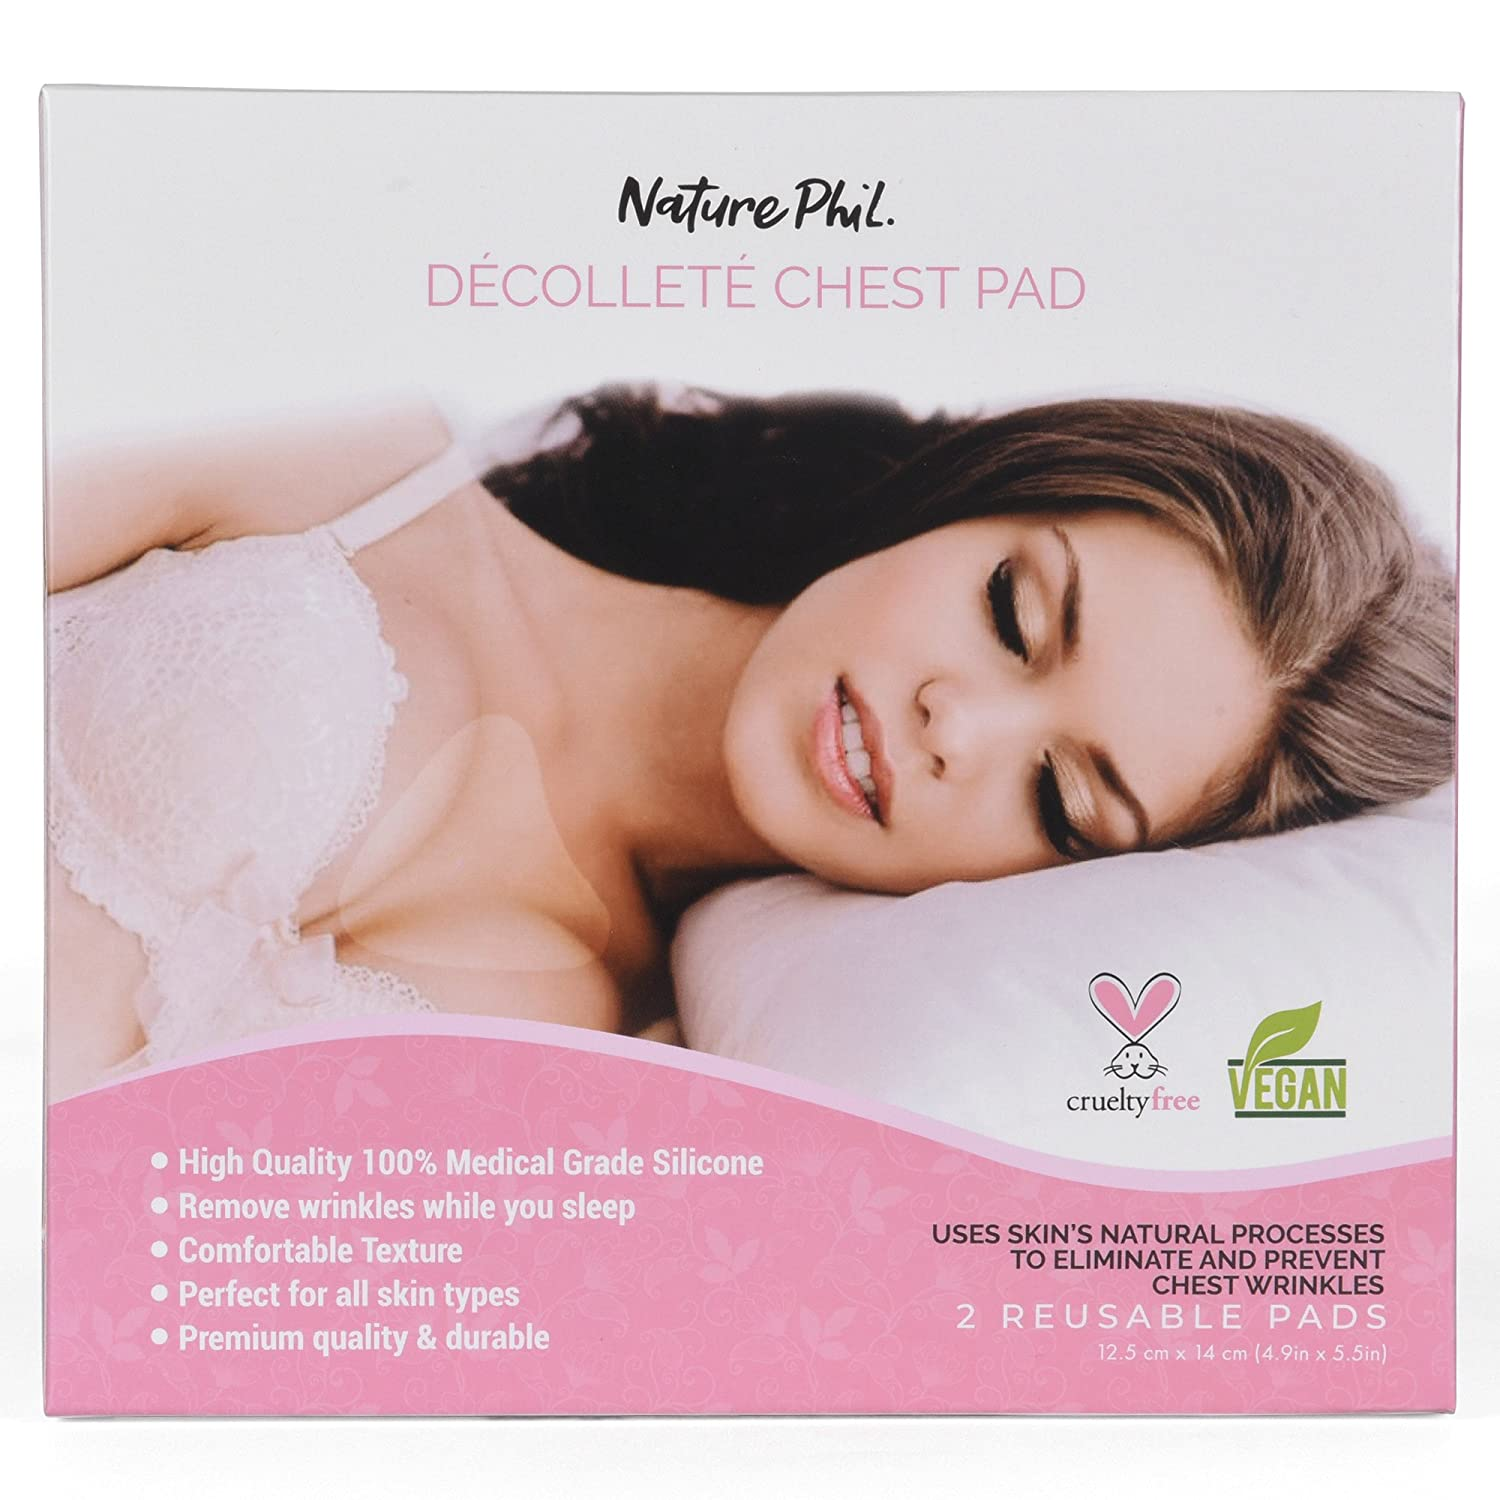 Amazon.com : (2 Pads) Nature Phil - Premium Anti Wrinkle Chest Pads for  Decollete, Reusable/Washable Medical Grade Anti-Wrinkle Silicone to  Eliminate and ...